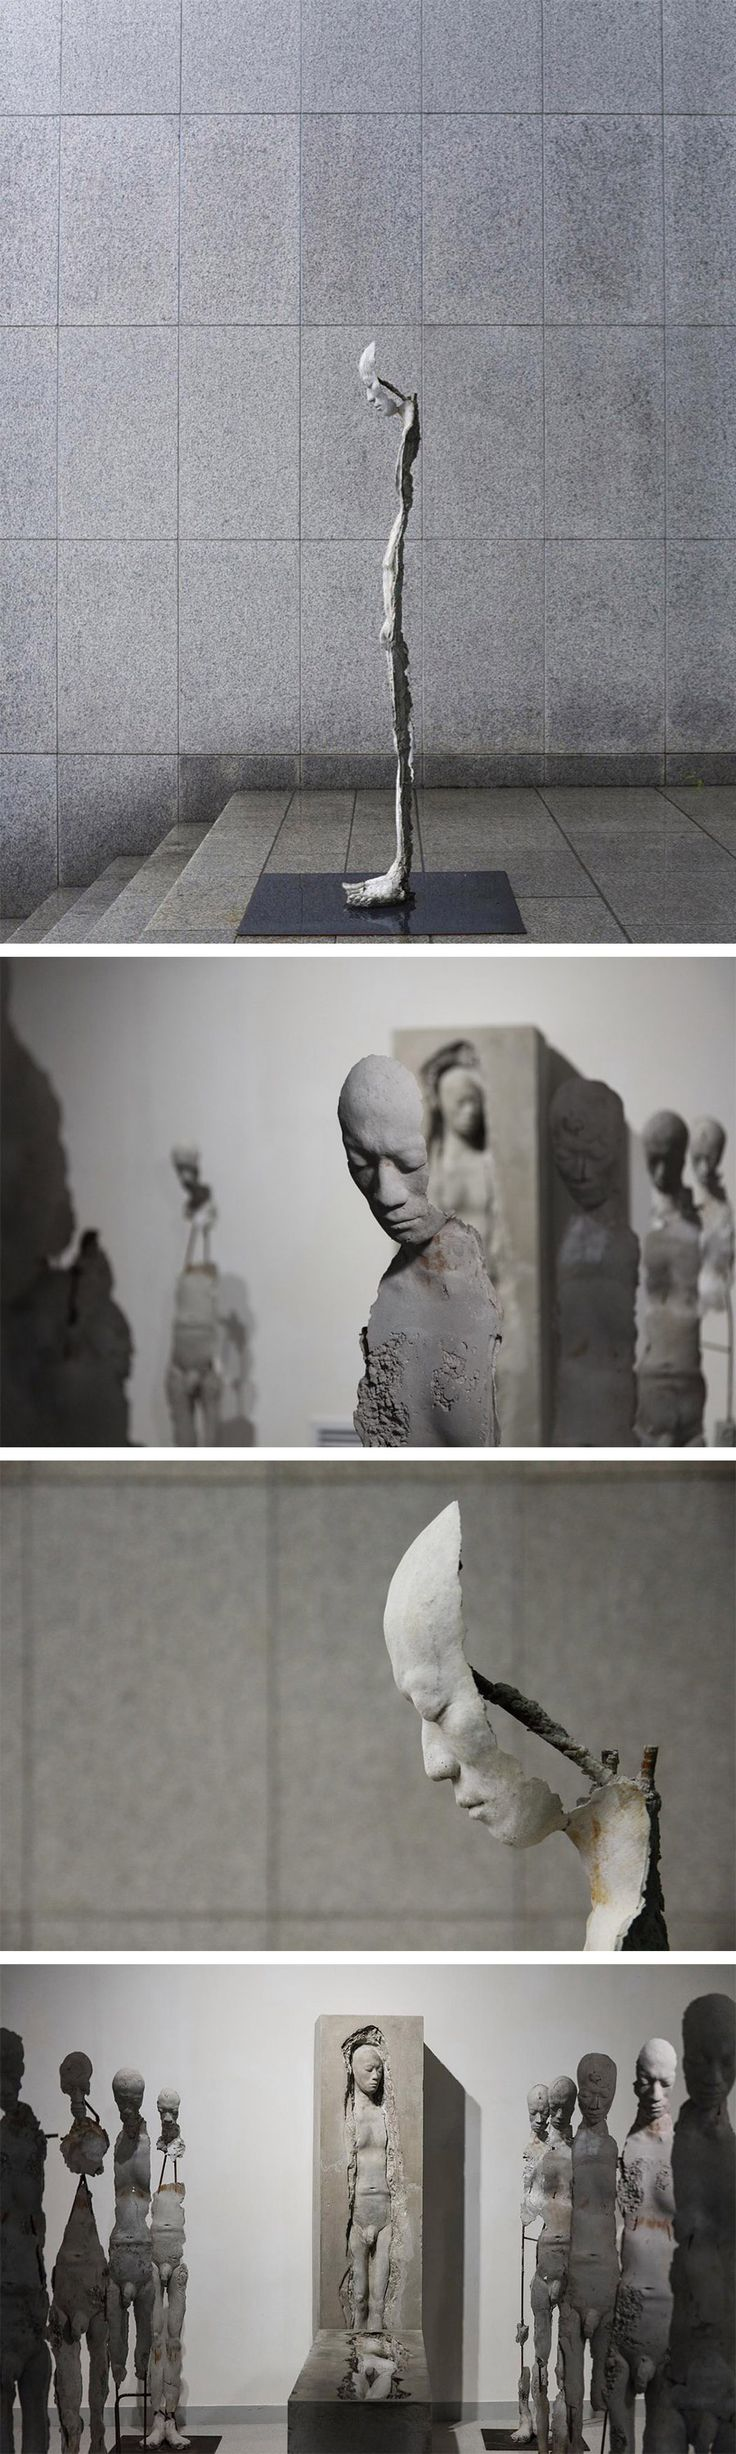 Hollow Figurative Sculptures by Park Ki Pyung